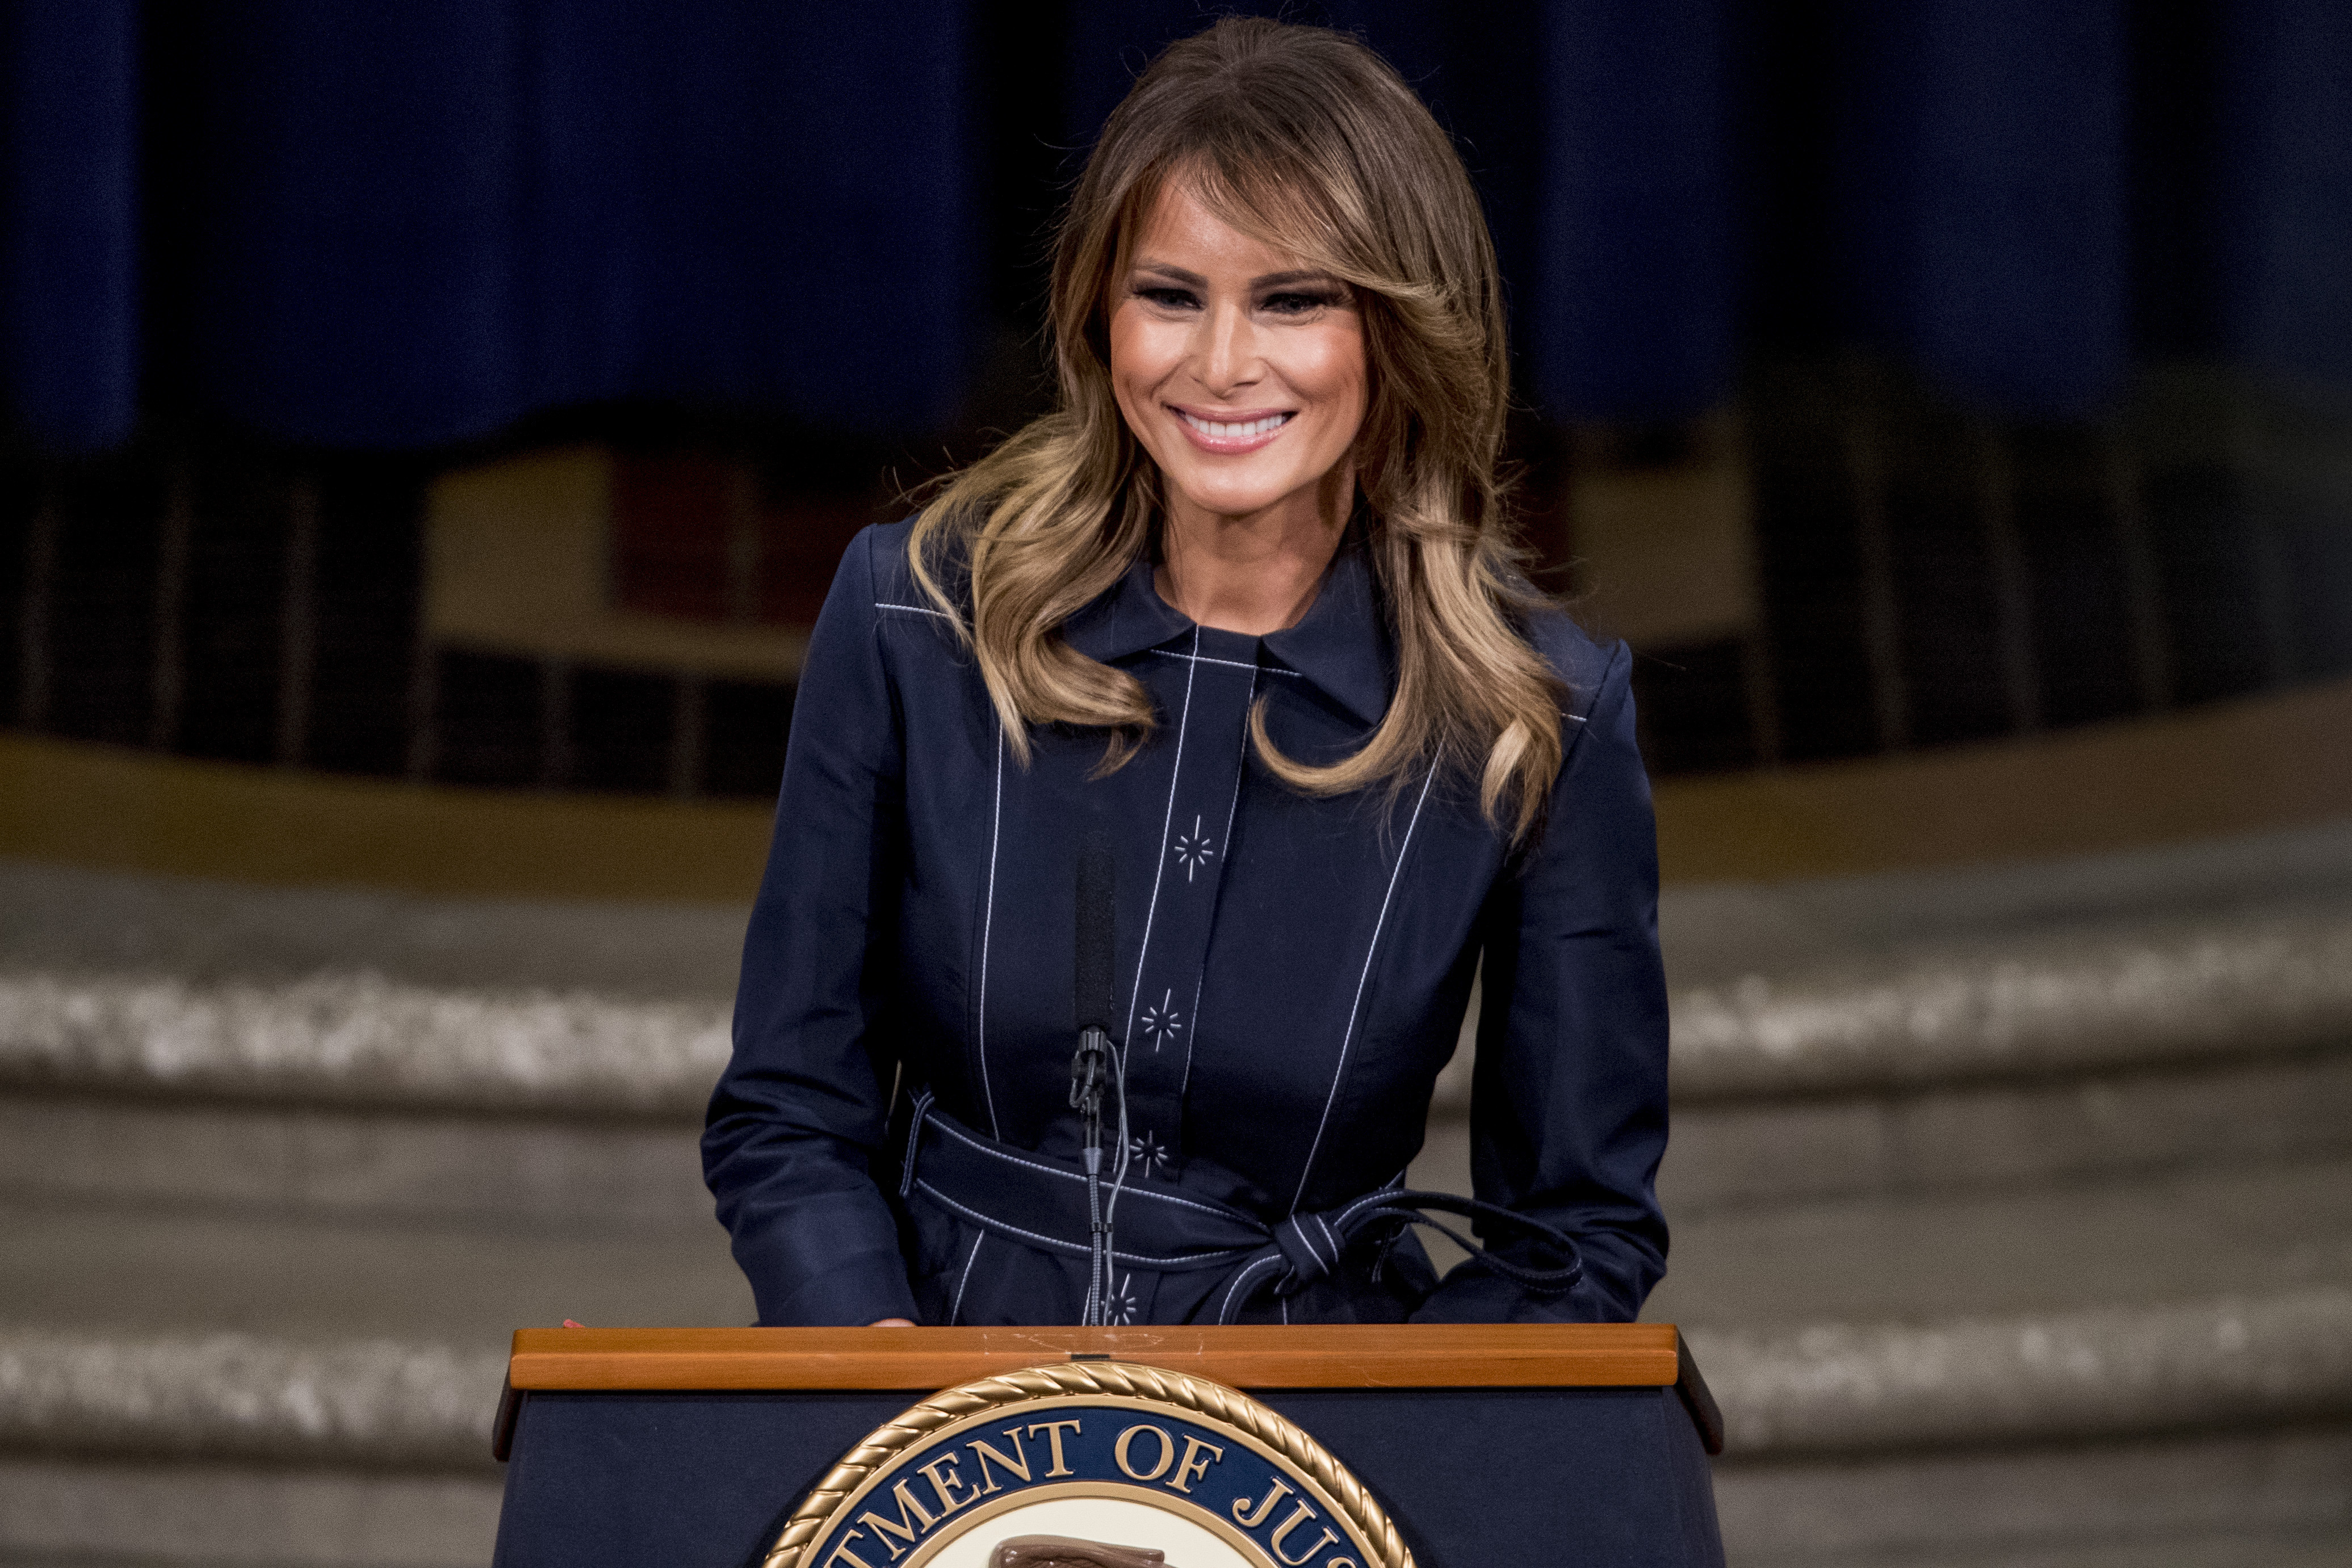 First lady Melania Trump smiles during a speech at the Justice Department's National Opioid Summit at the Department of Justice, on March 6, 2020, in Washington.